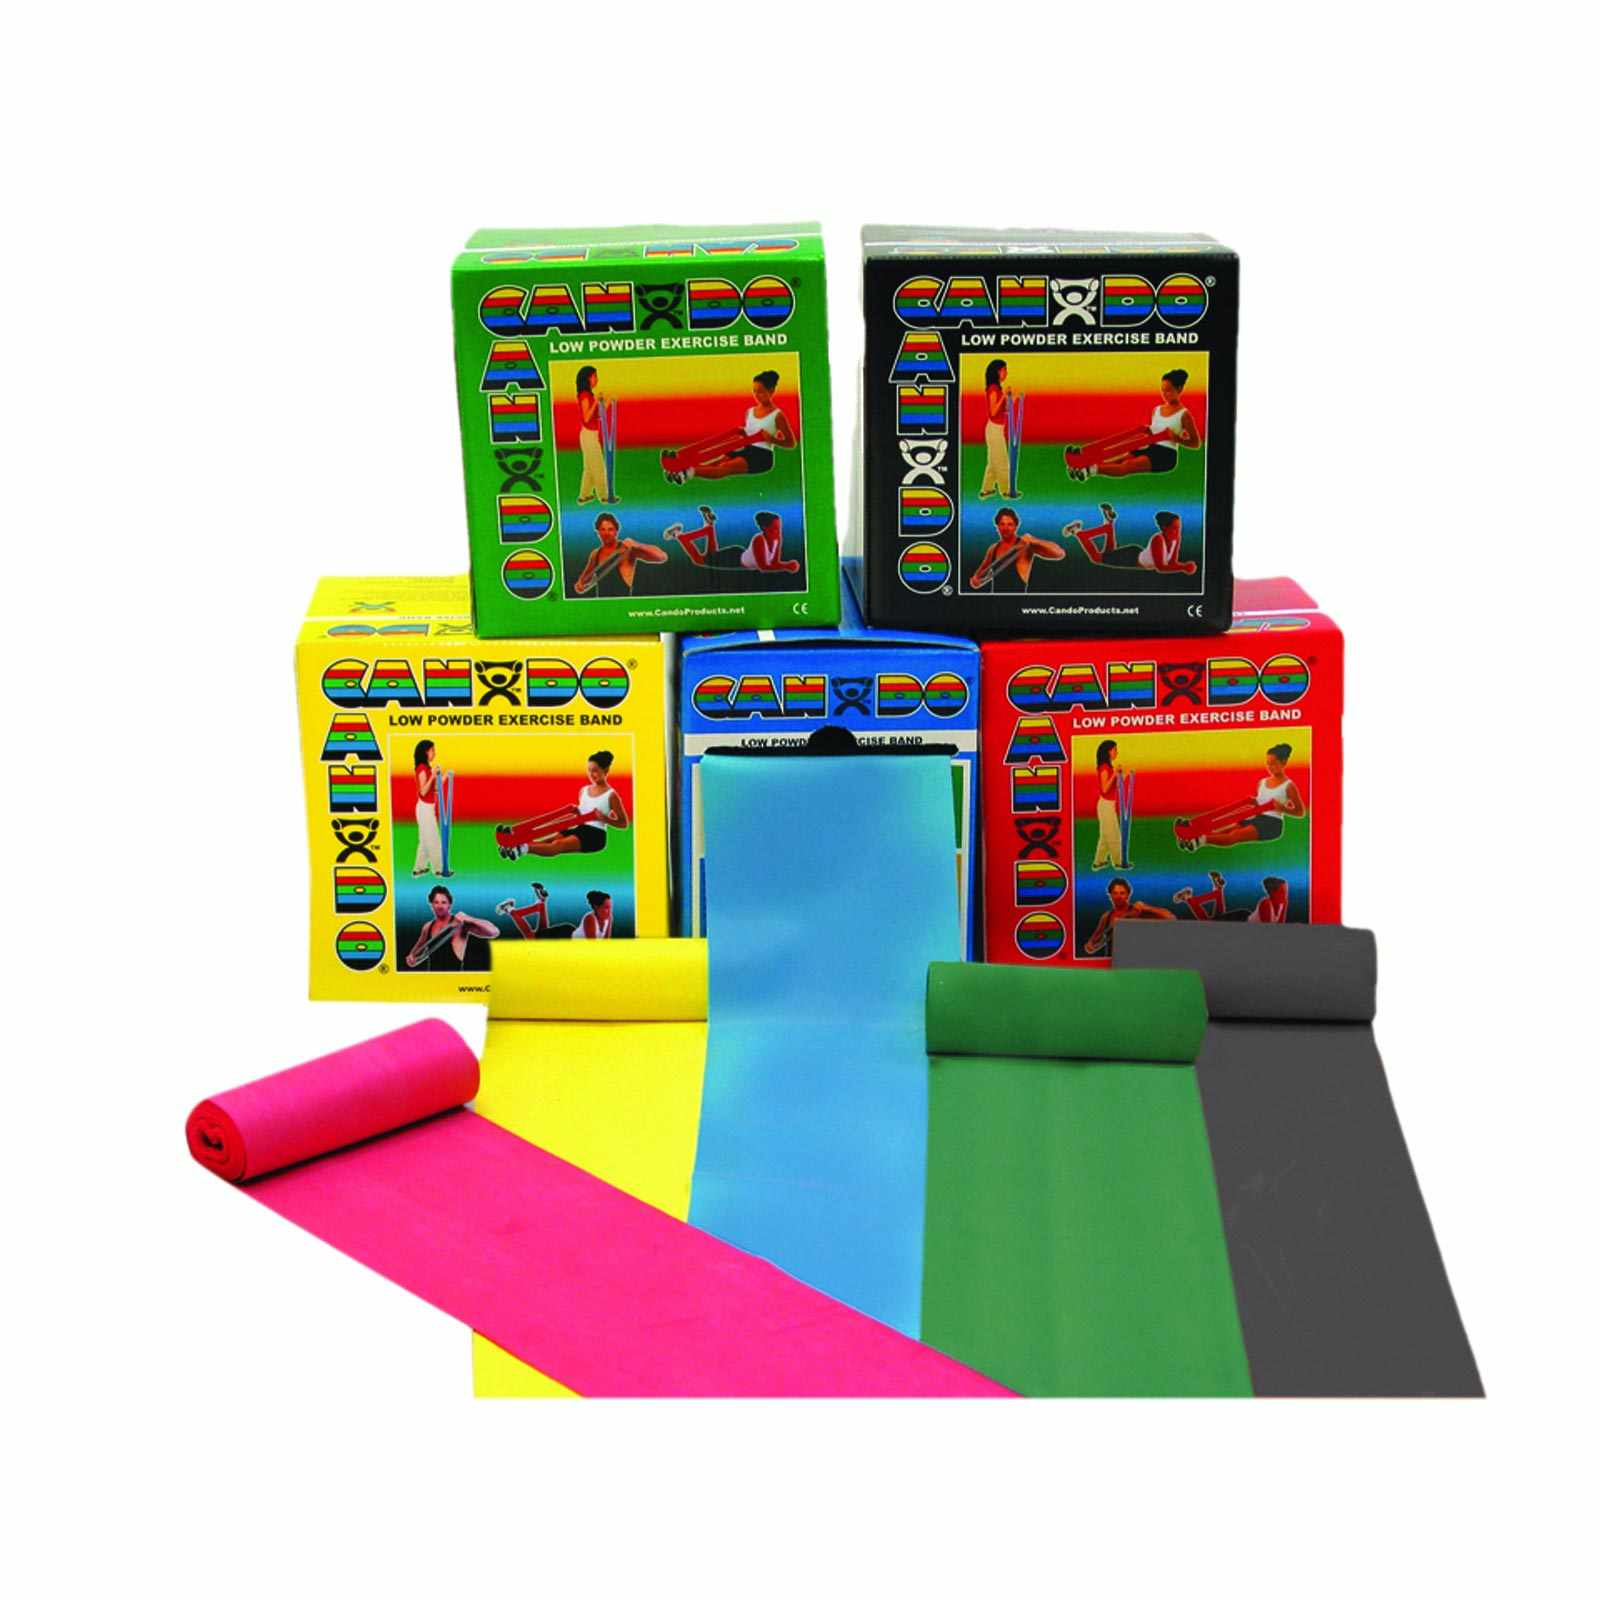 CanDo Low Powder Exercise Band Roll Set